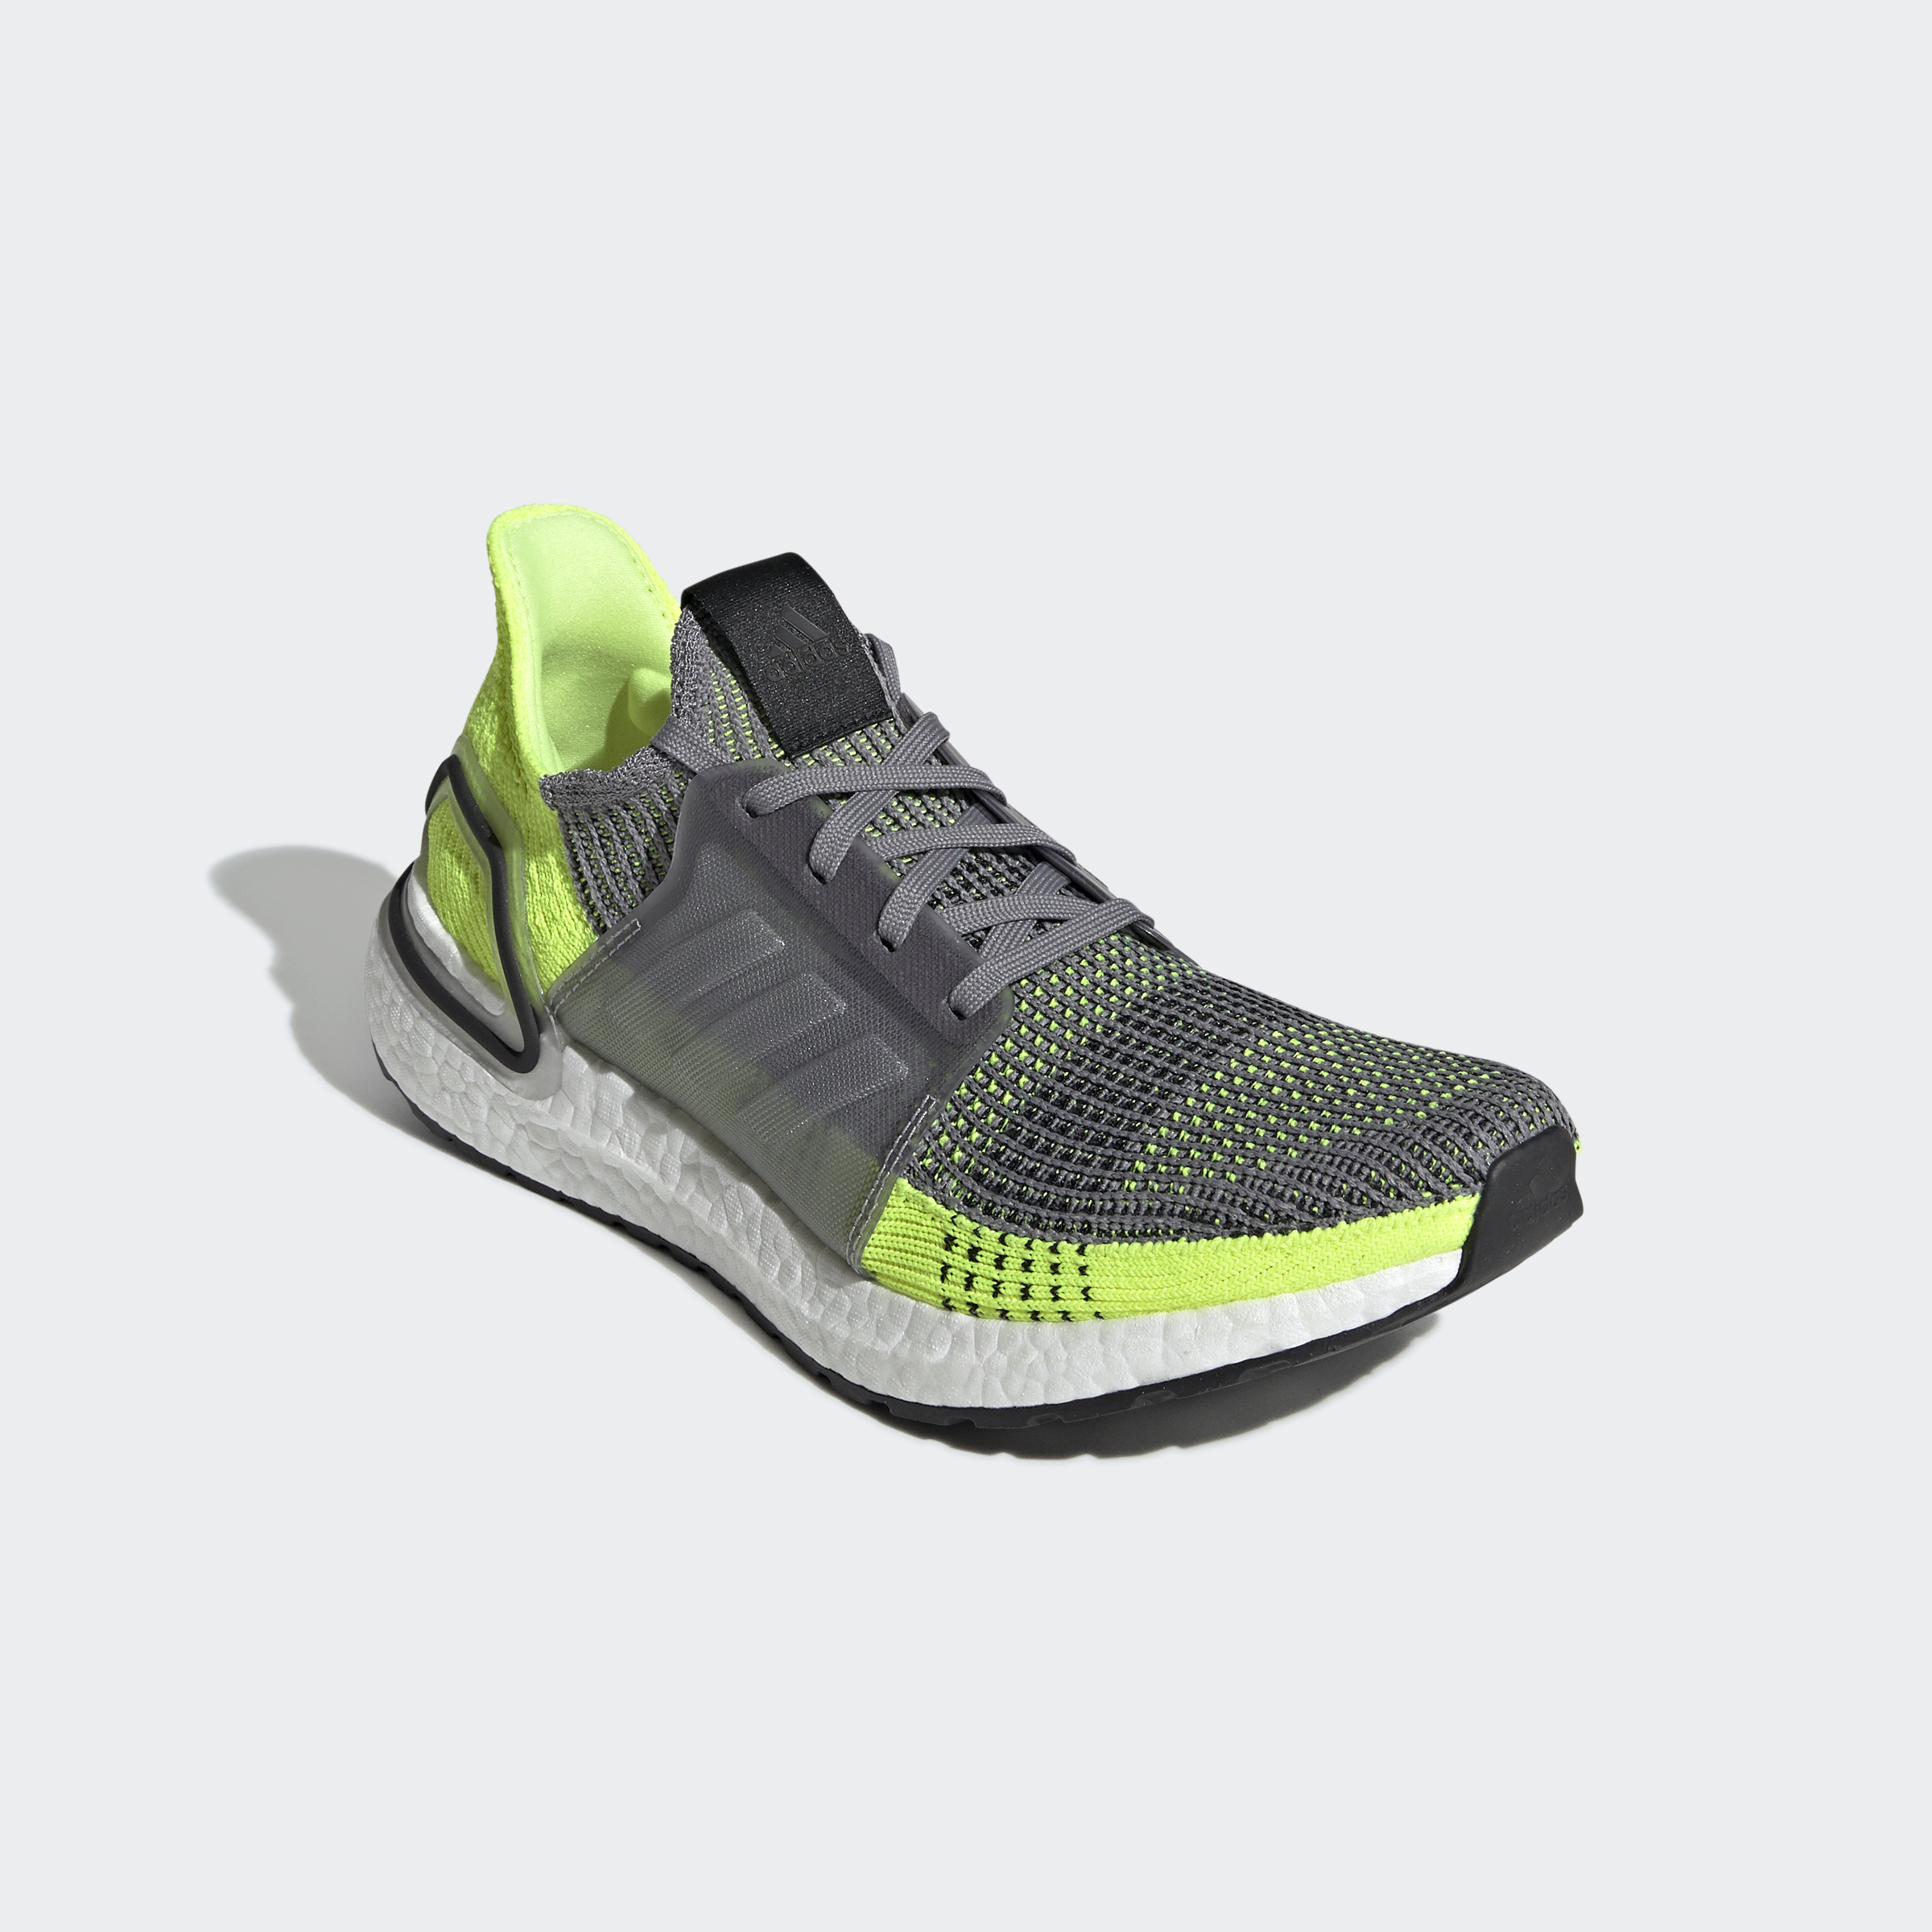 adidas-Ultraboost-19-Shoes-Athletic-amp-Sneakers thumbnail 30